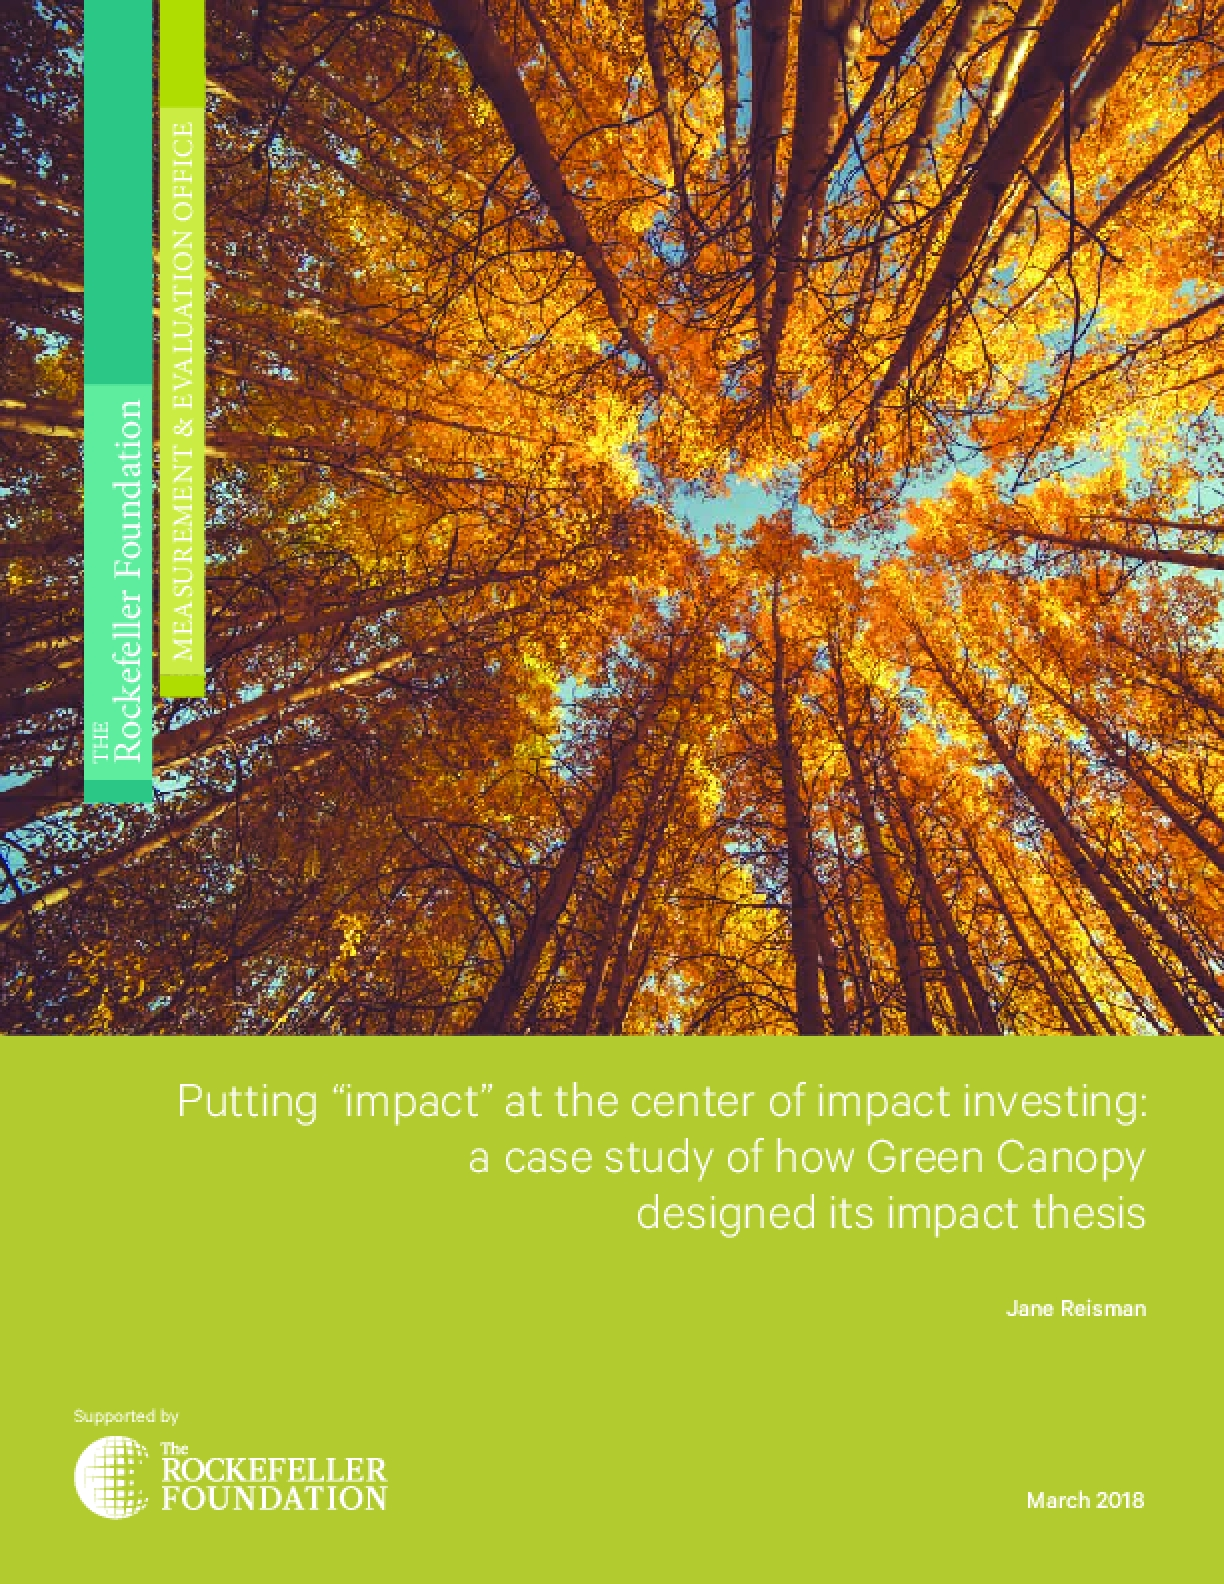 """Putting """"Impact"""" at the Center of Impact Investing: A Case Study of How Green Canopy Designed its Impact Thesis"""